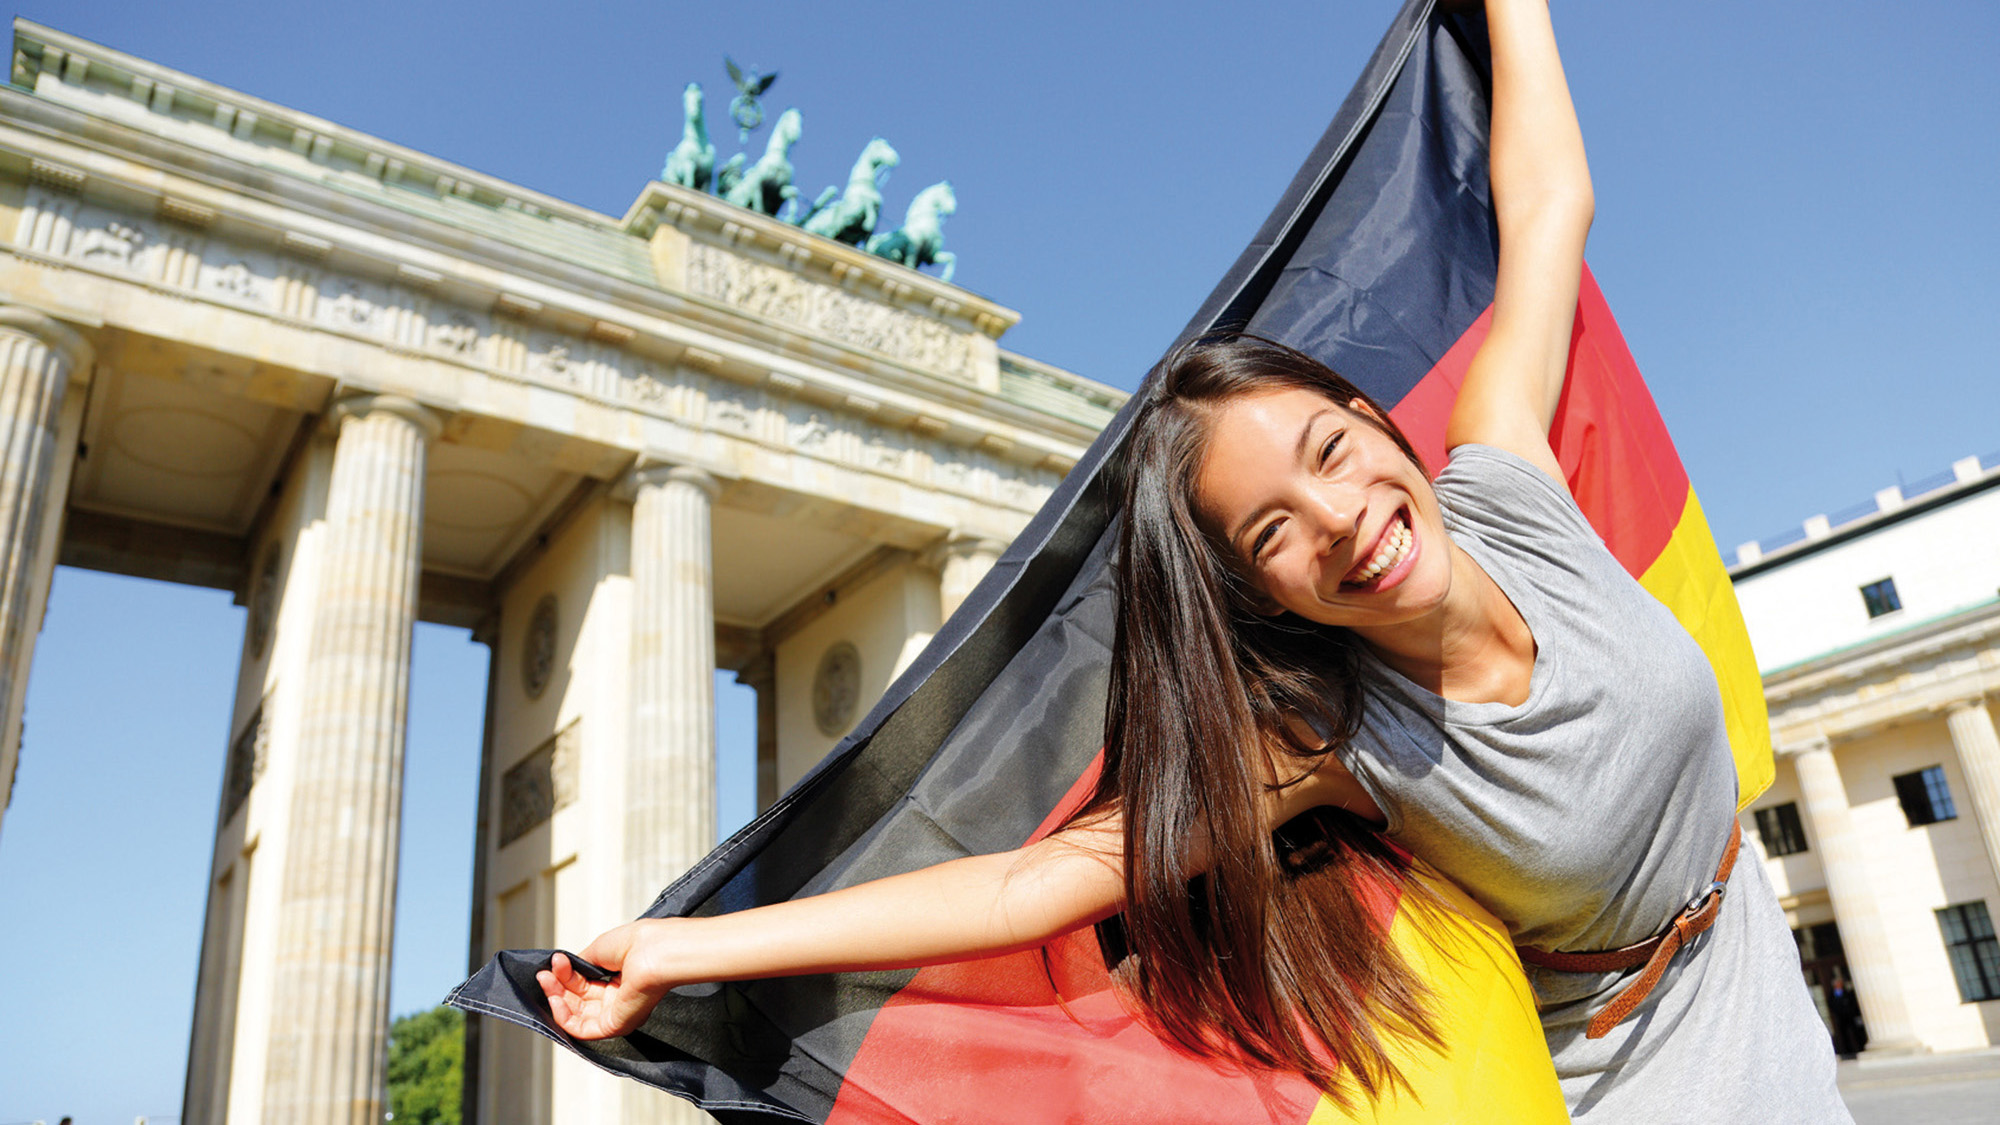 German flag woman happy at Berlin Germany